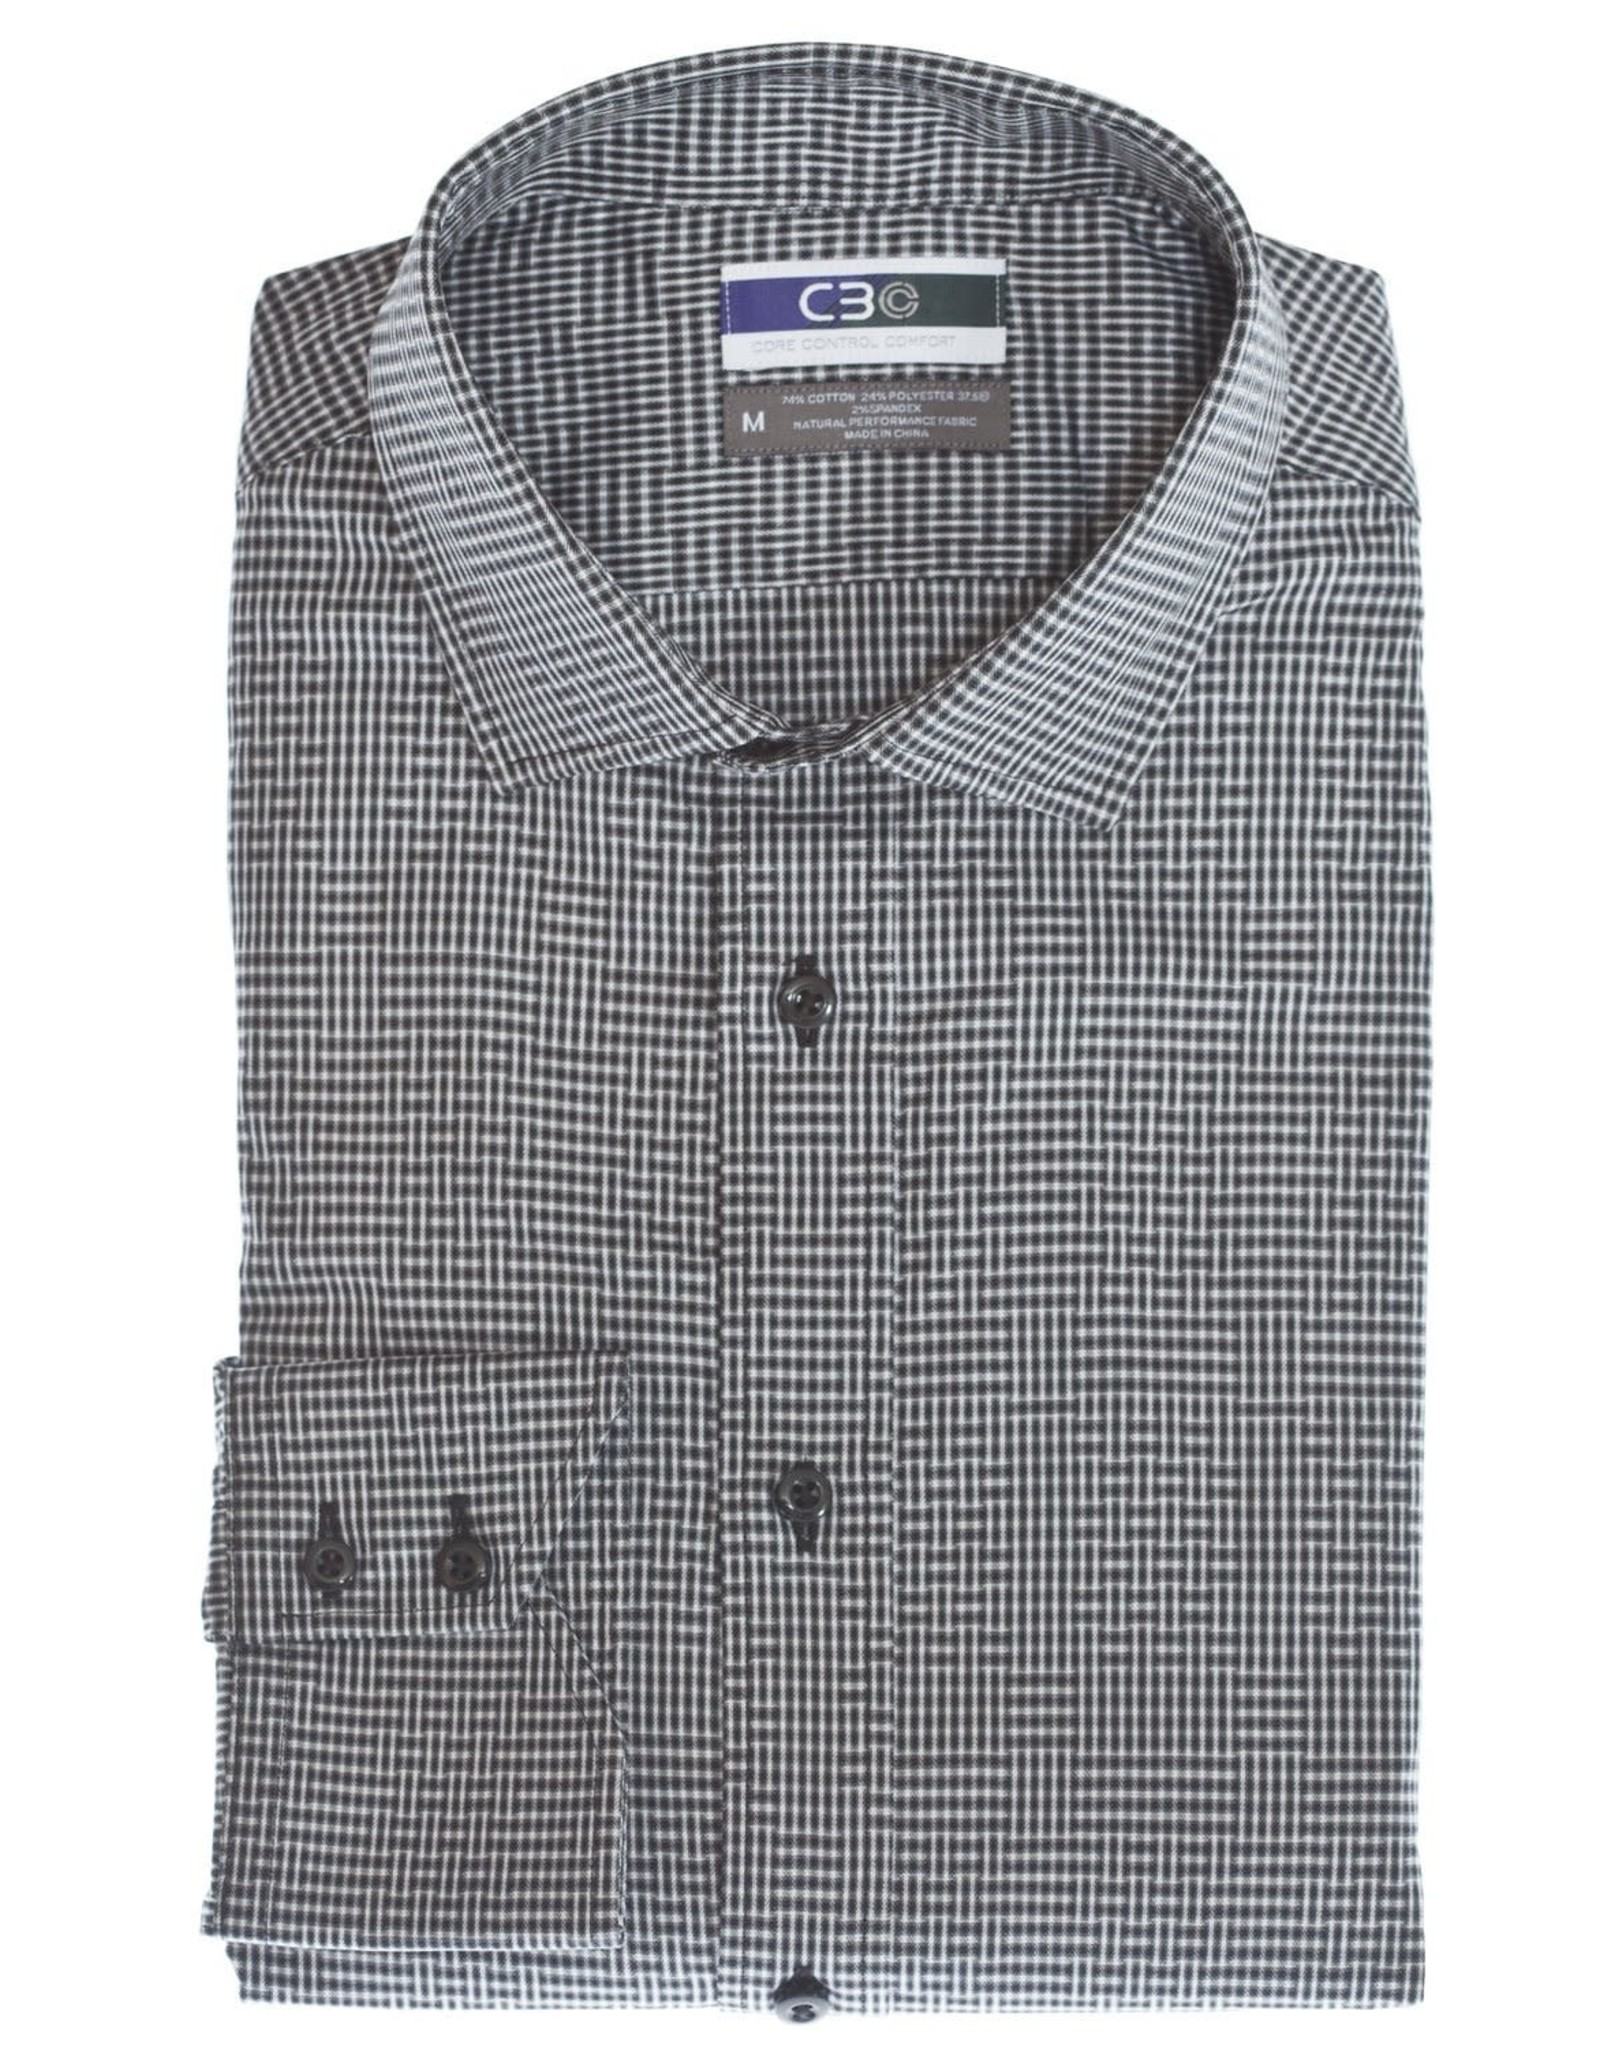 Thomas Dean & Co C3 Basketweave Performance Sport Shirt